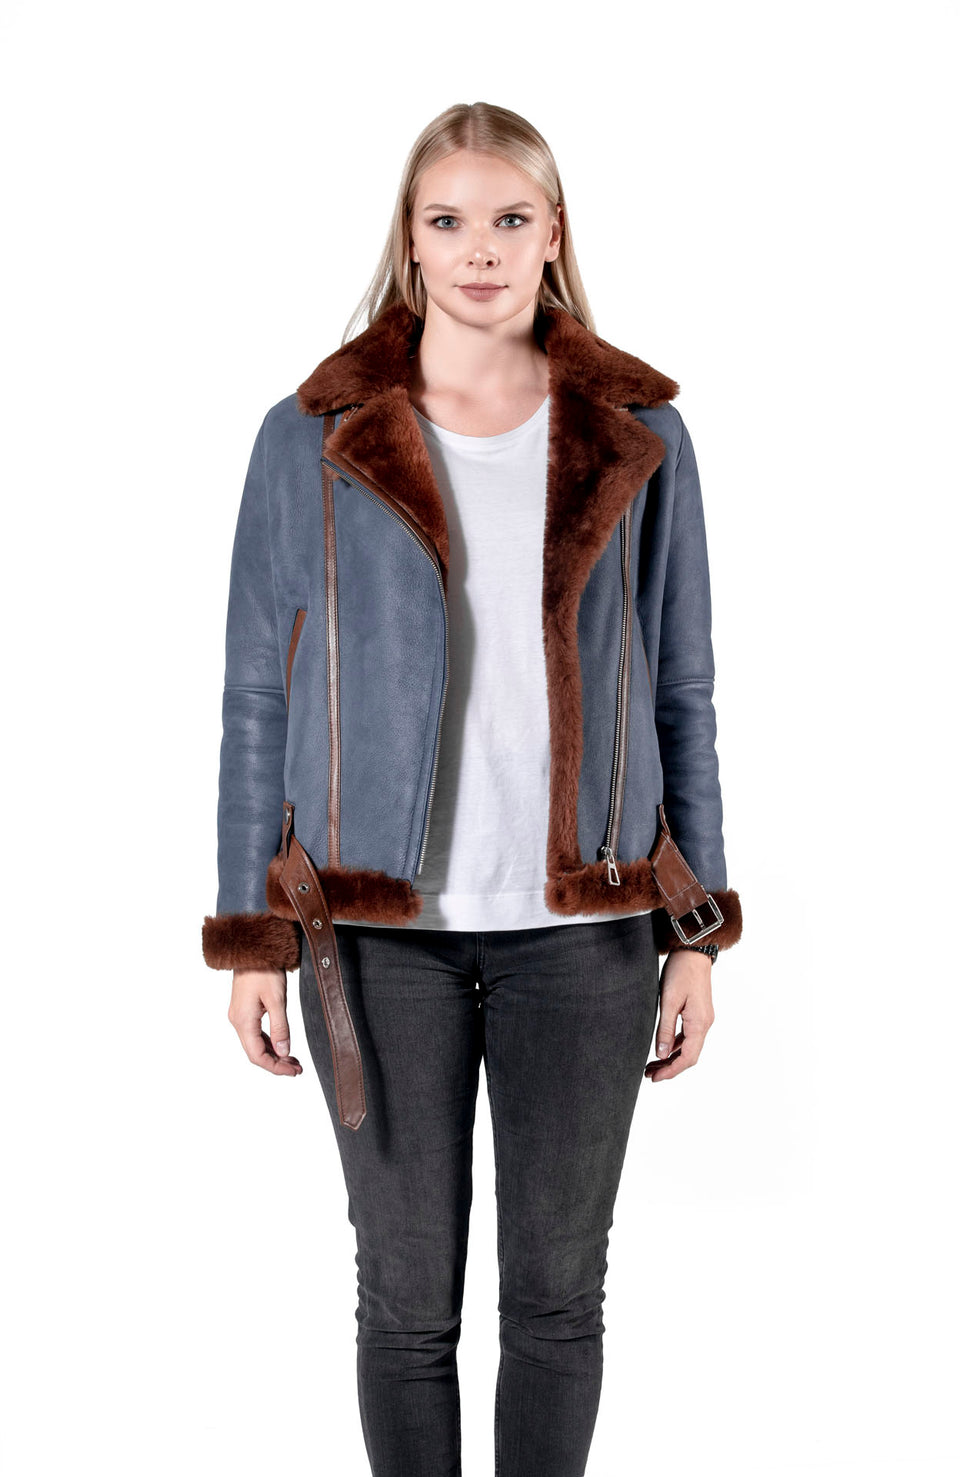 Valencia - Women's Premium Shearling Jacket Fashion 2020